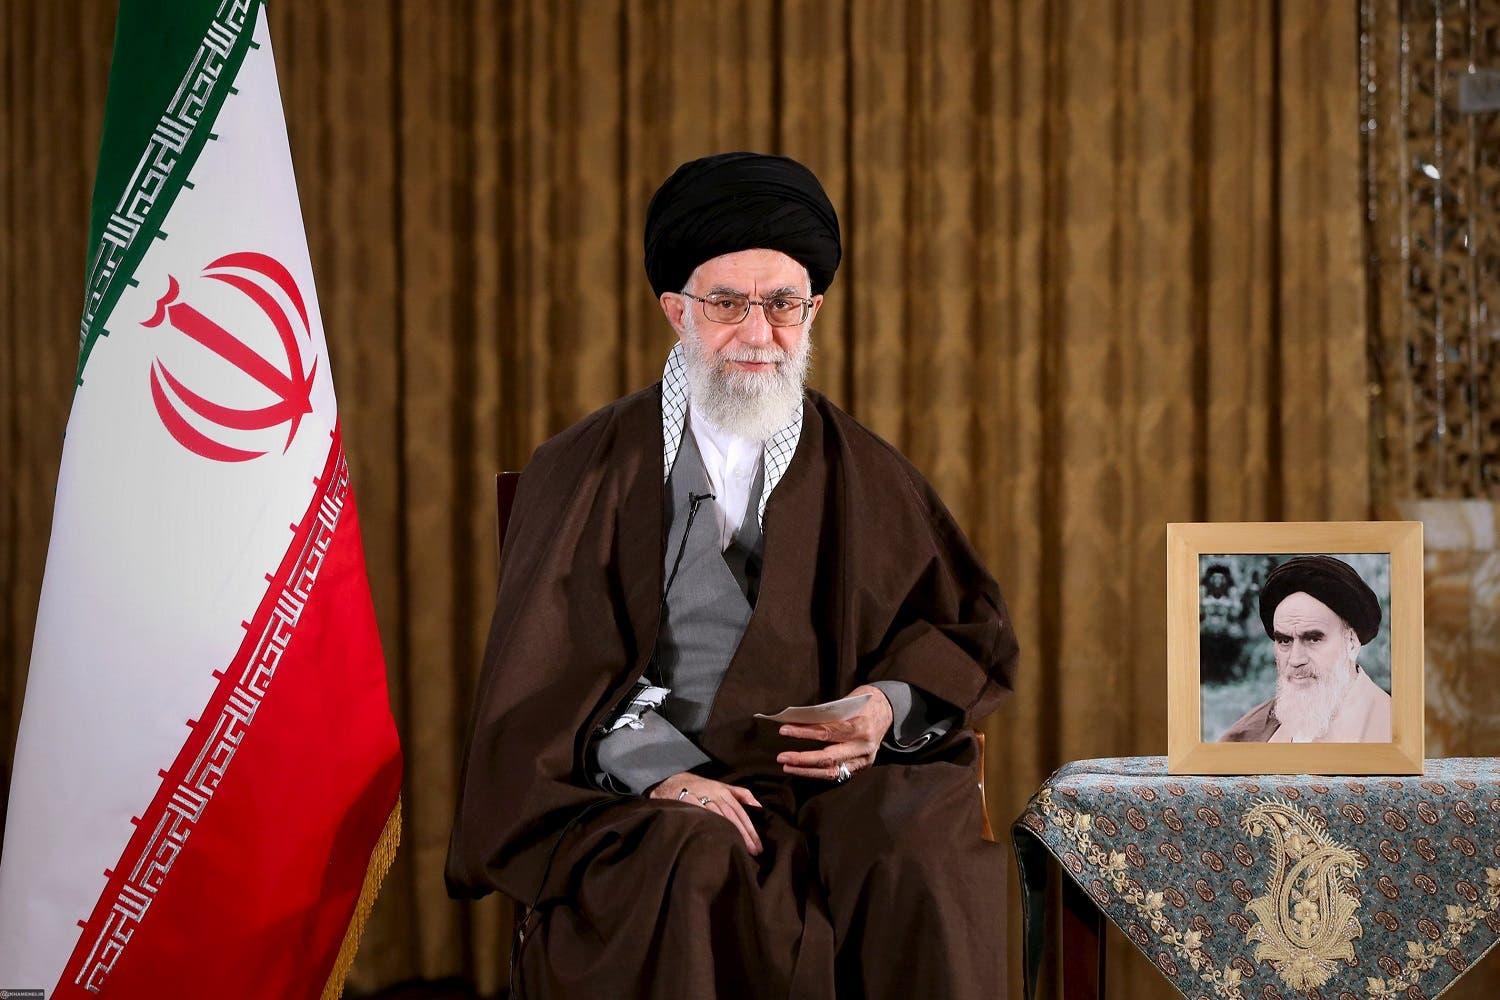 Iran's Supreme Leader Ayatollah Ali Khamenei poses before delivering a speech marking Nowruz, Iranian new year, in this handout photo released by the Iranian Supreme Leader website on March 20, 2016. REUTERS/leader.ir